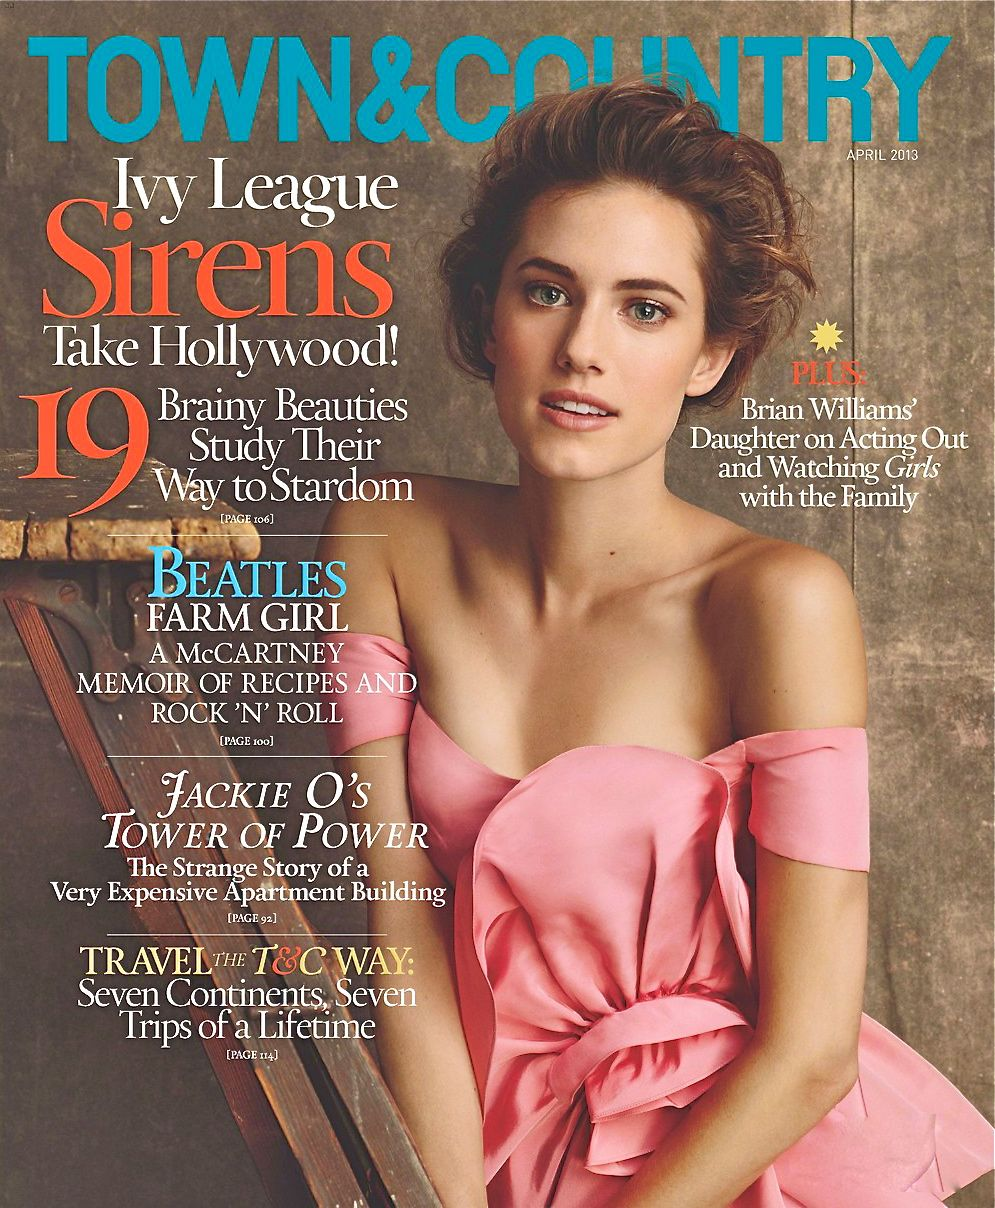 Town & Country to Host Philanthropy Summit